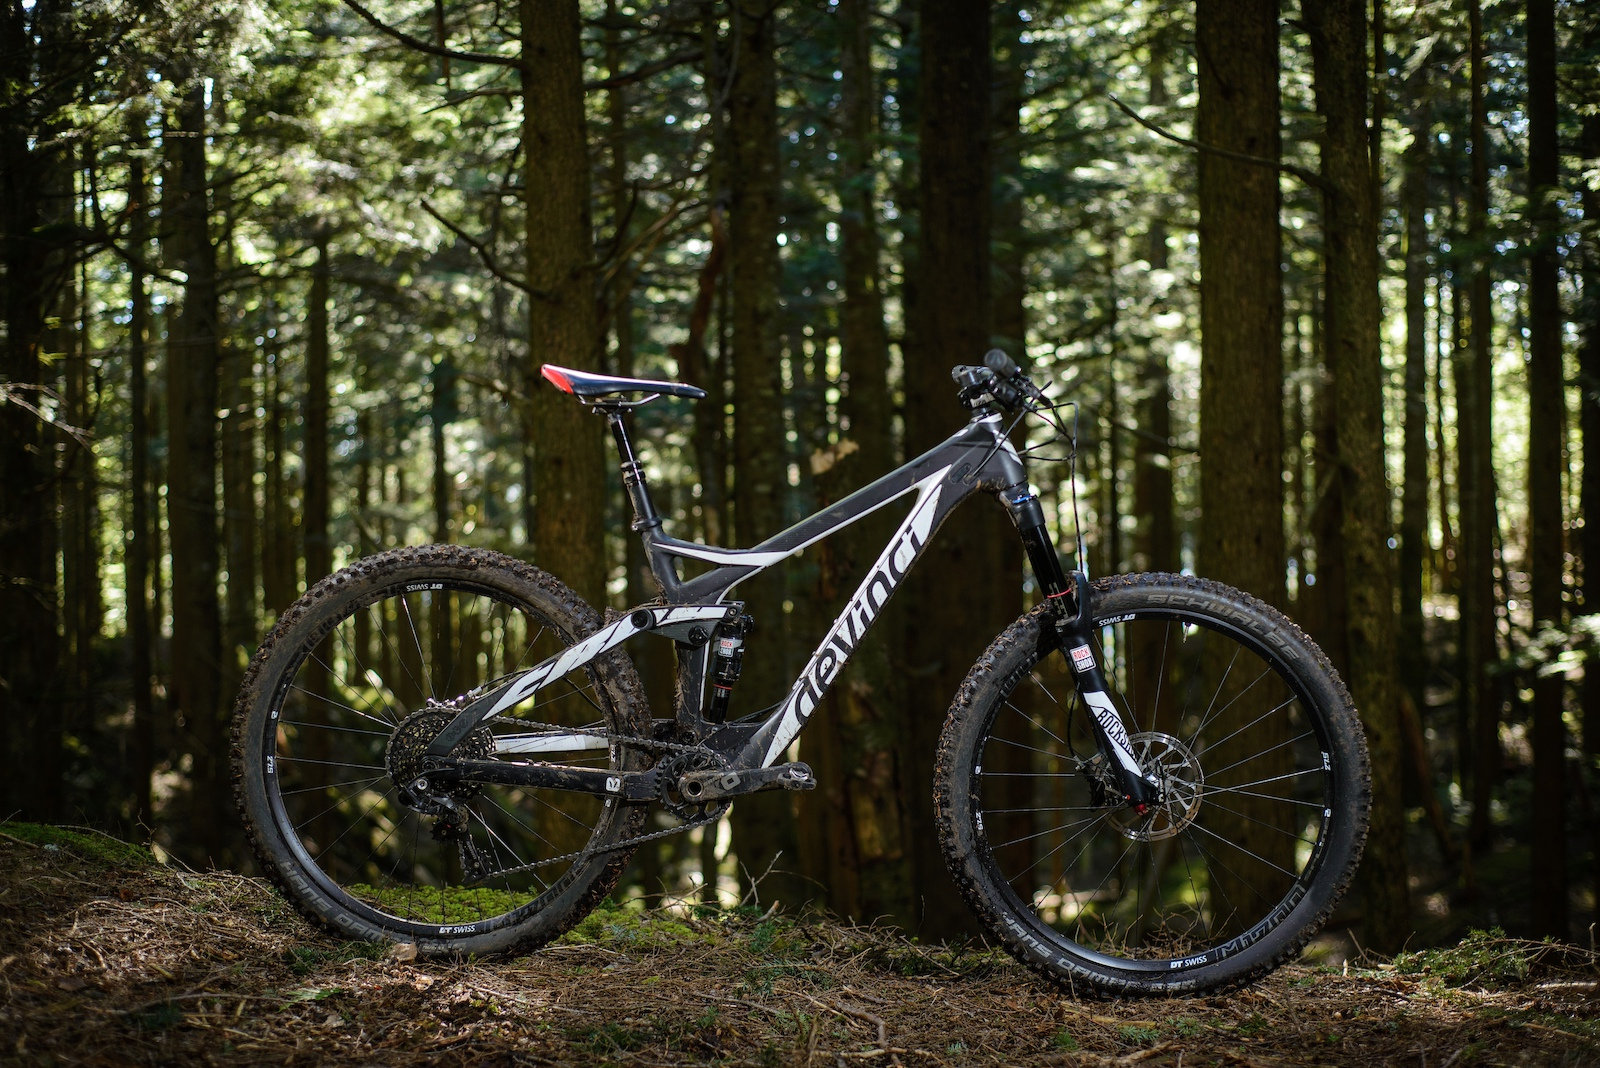 Devinci Troy Carbon RR Photo by James Lissimore